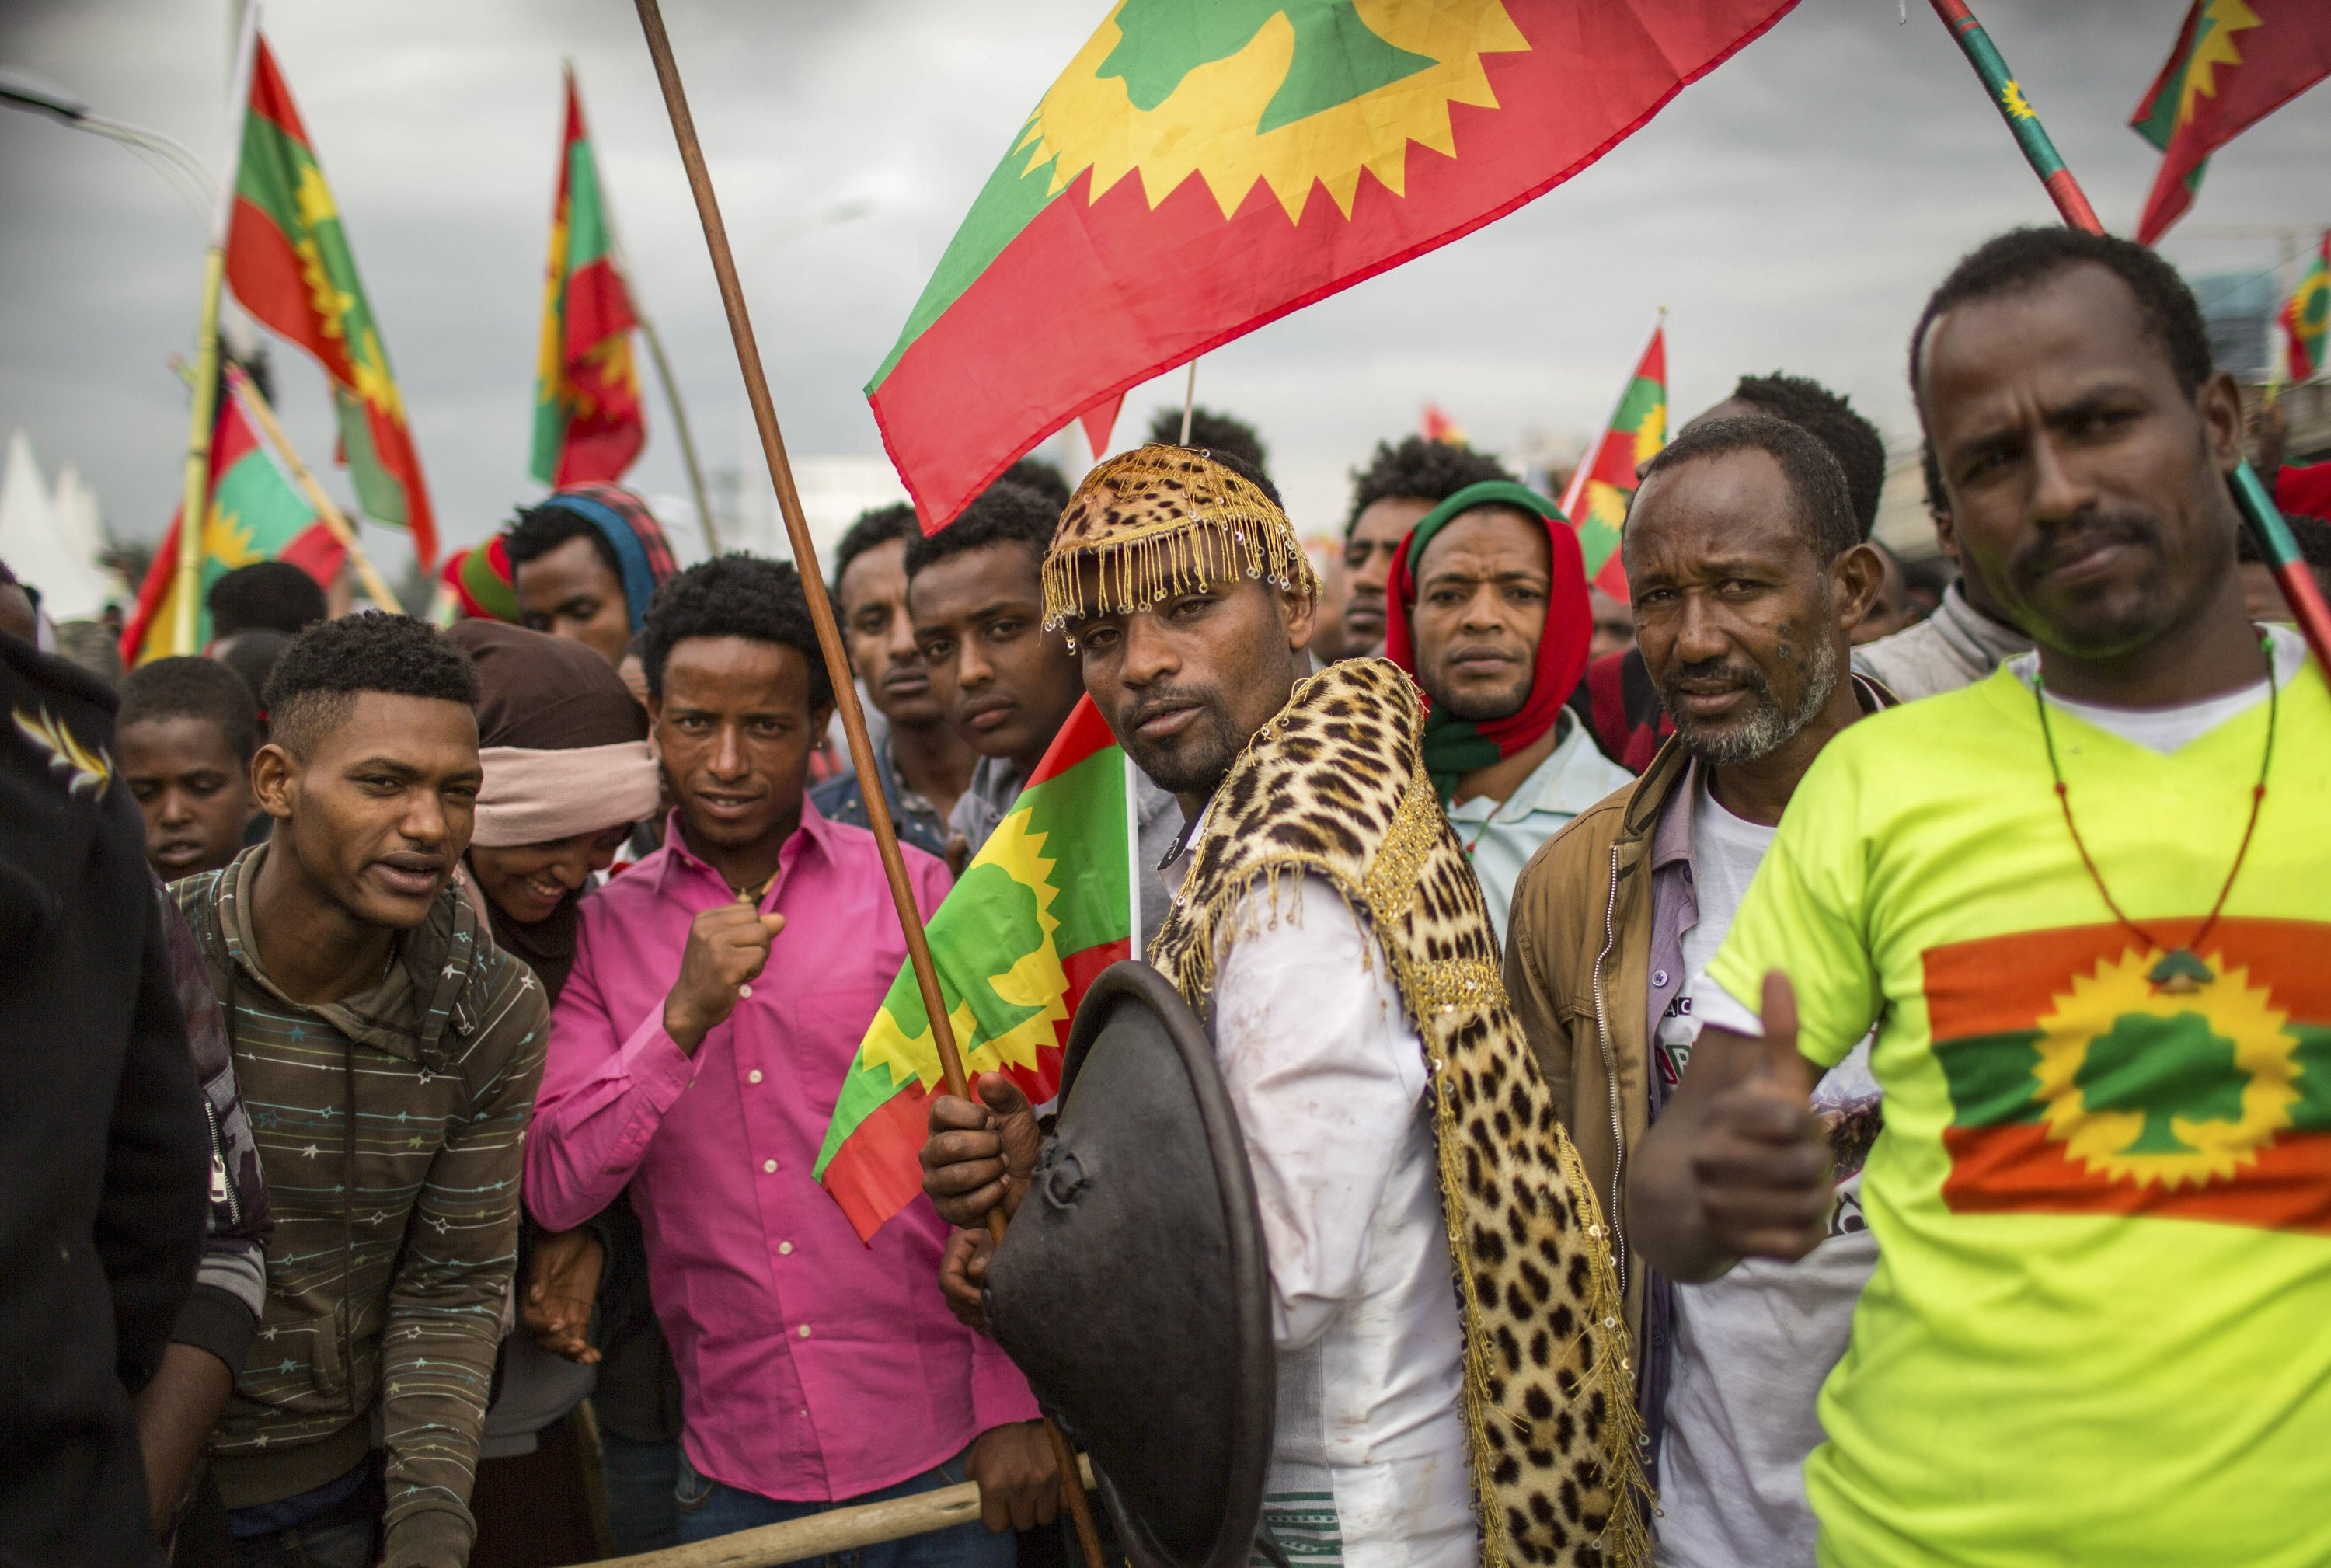 Hundreds of thousands in Ethiopia welcome once-banned group